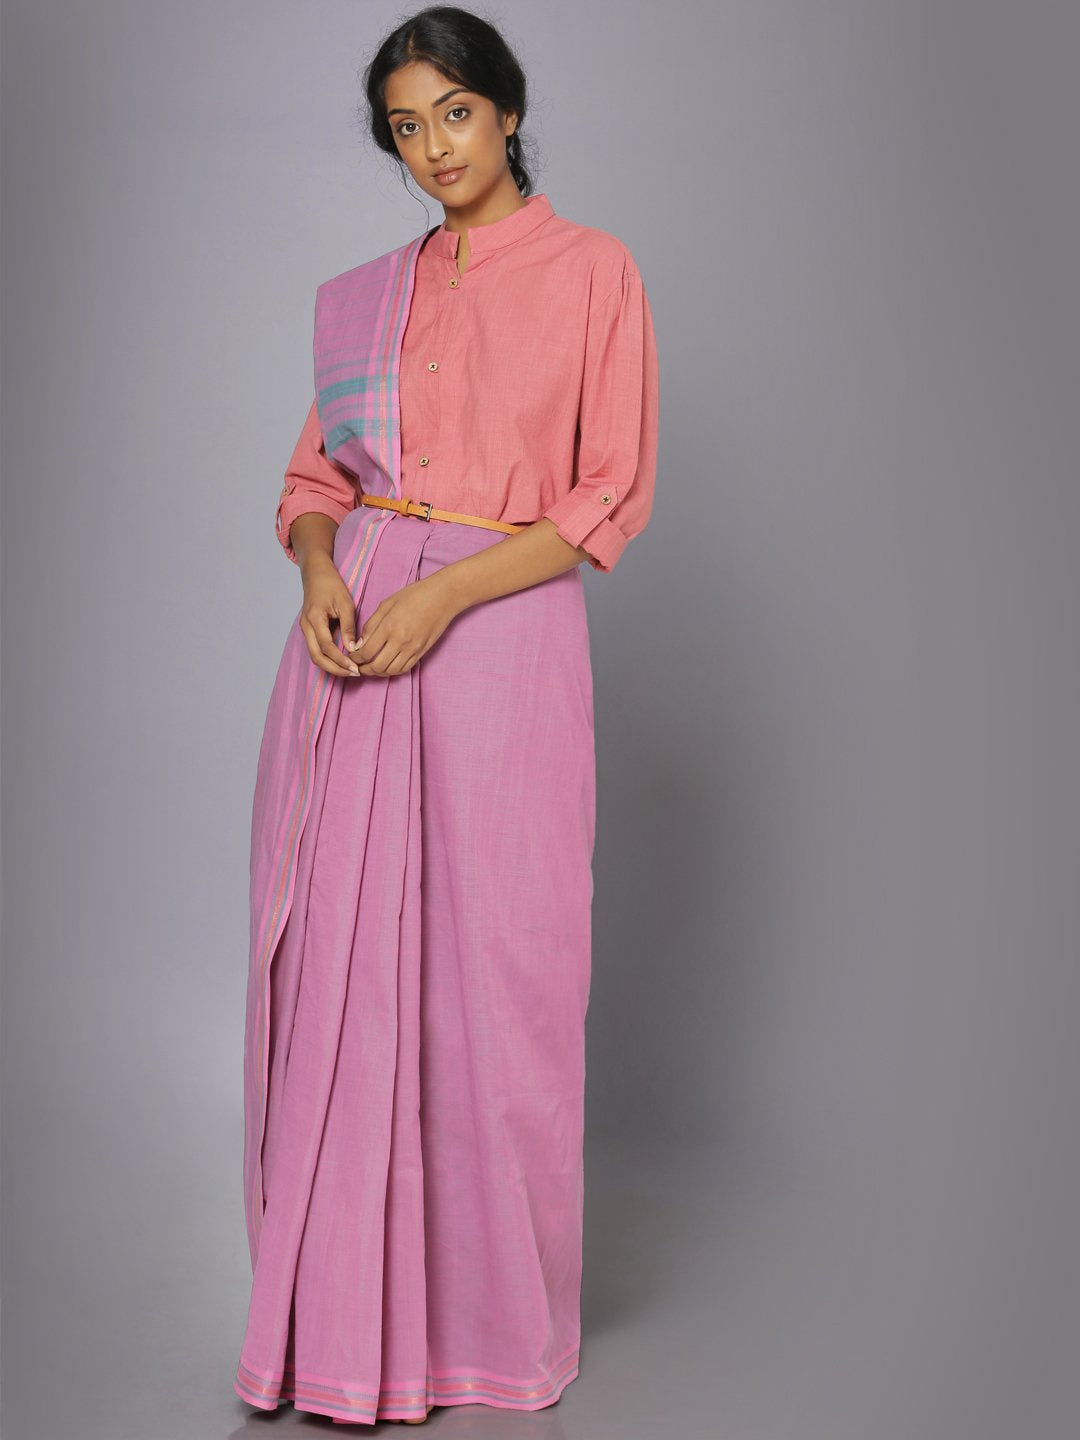 Taffy pink mangalgiri cotton saree